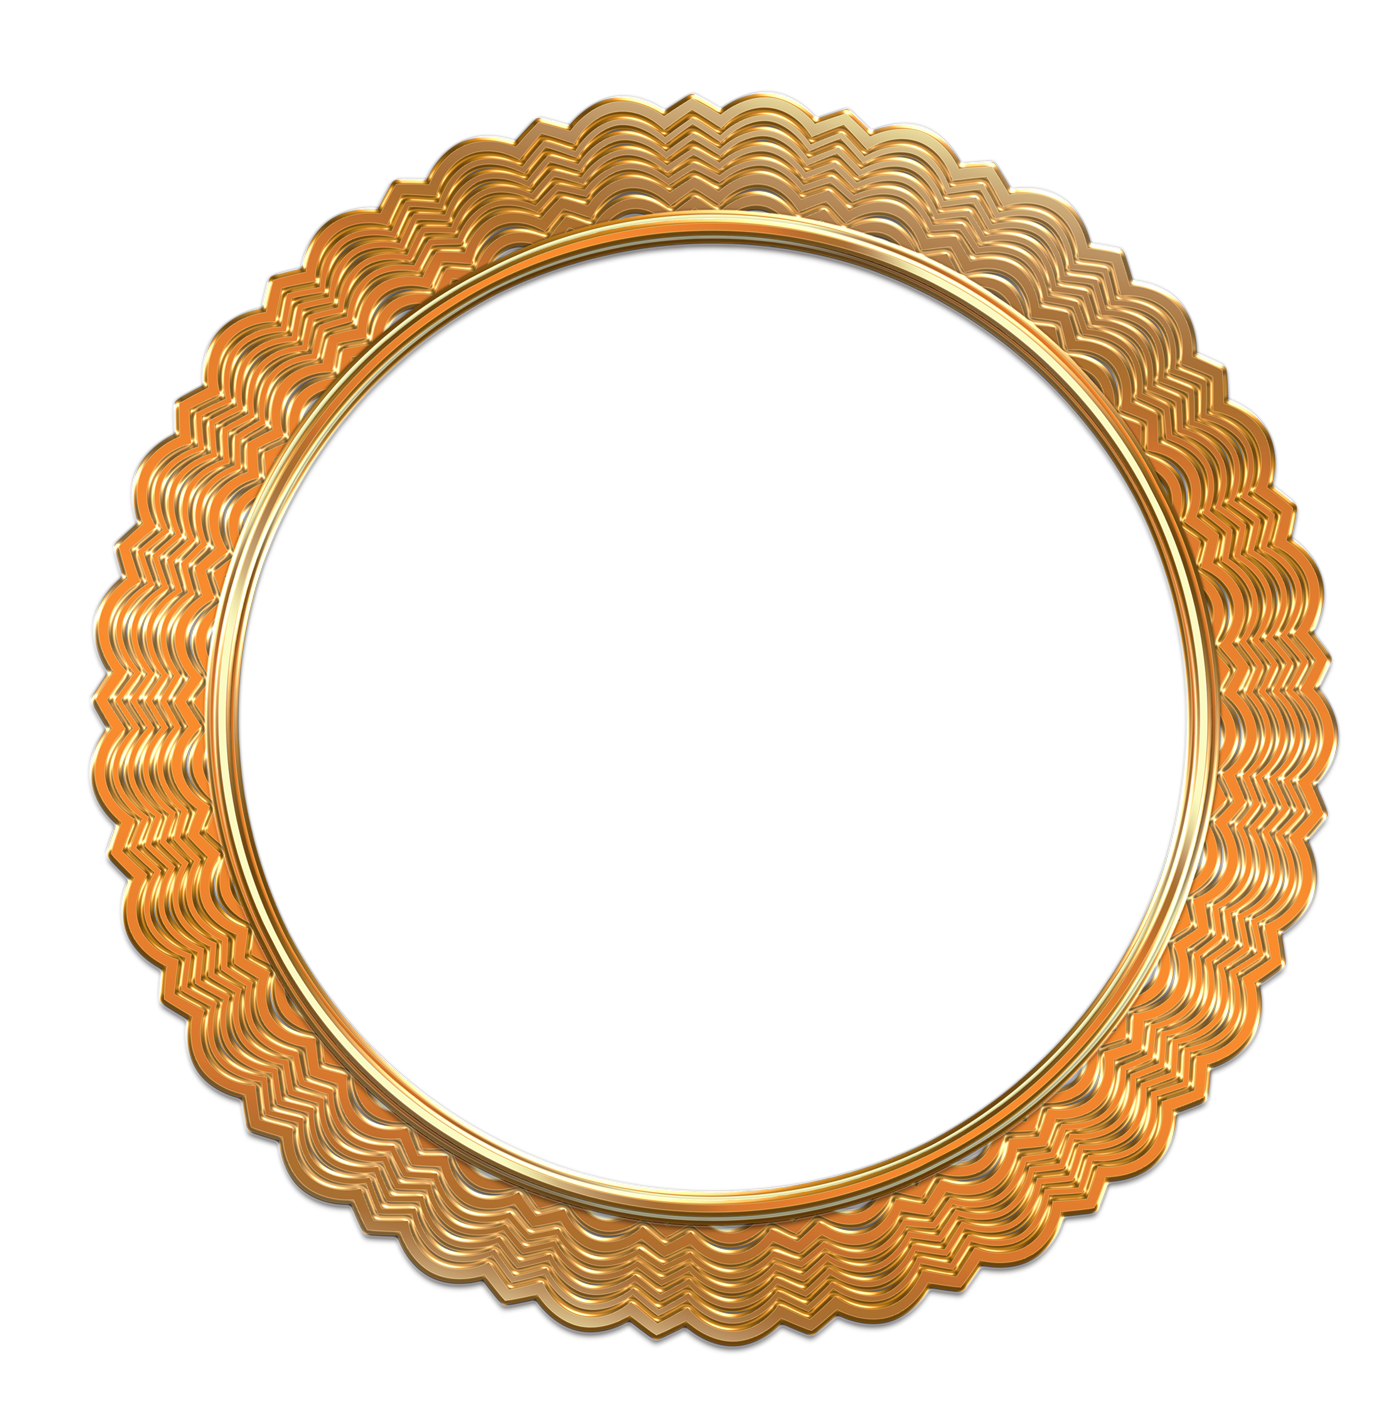 Antique Gold Photo Frame Png Image - 2282 - TransparentPNG